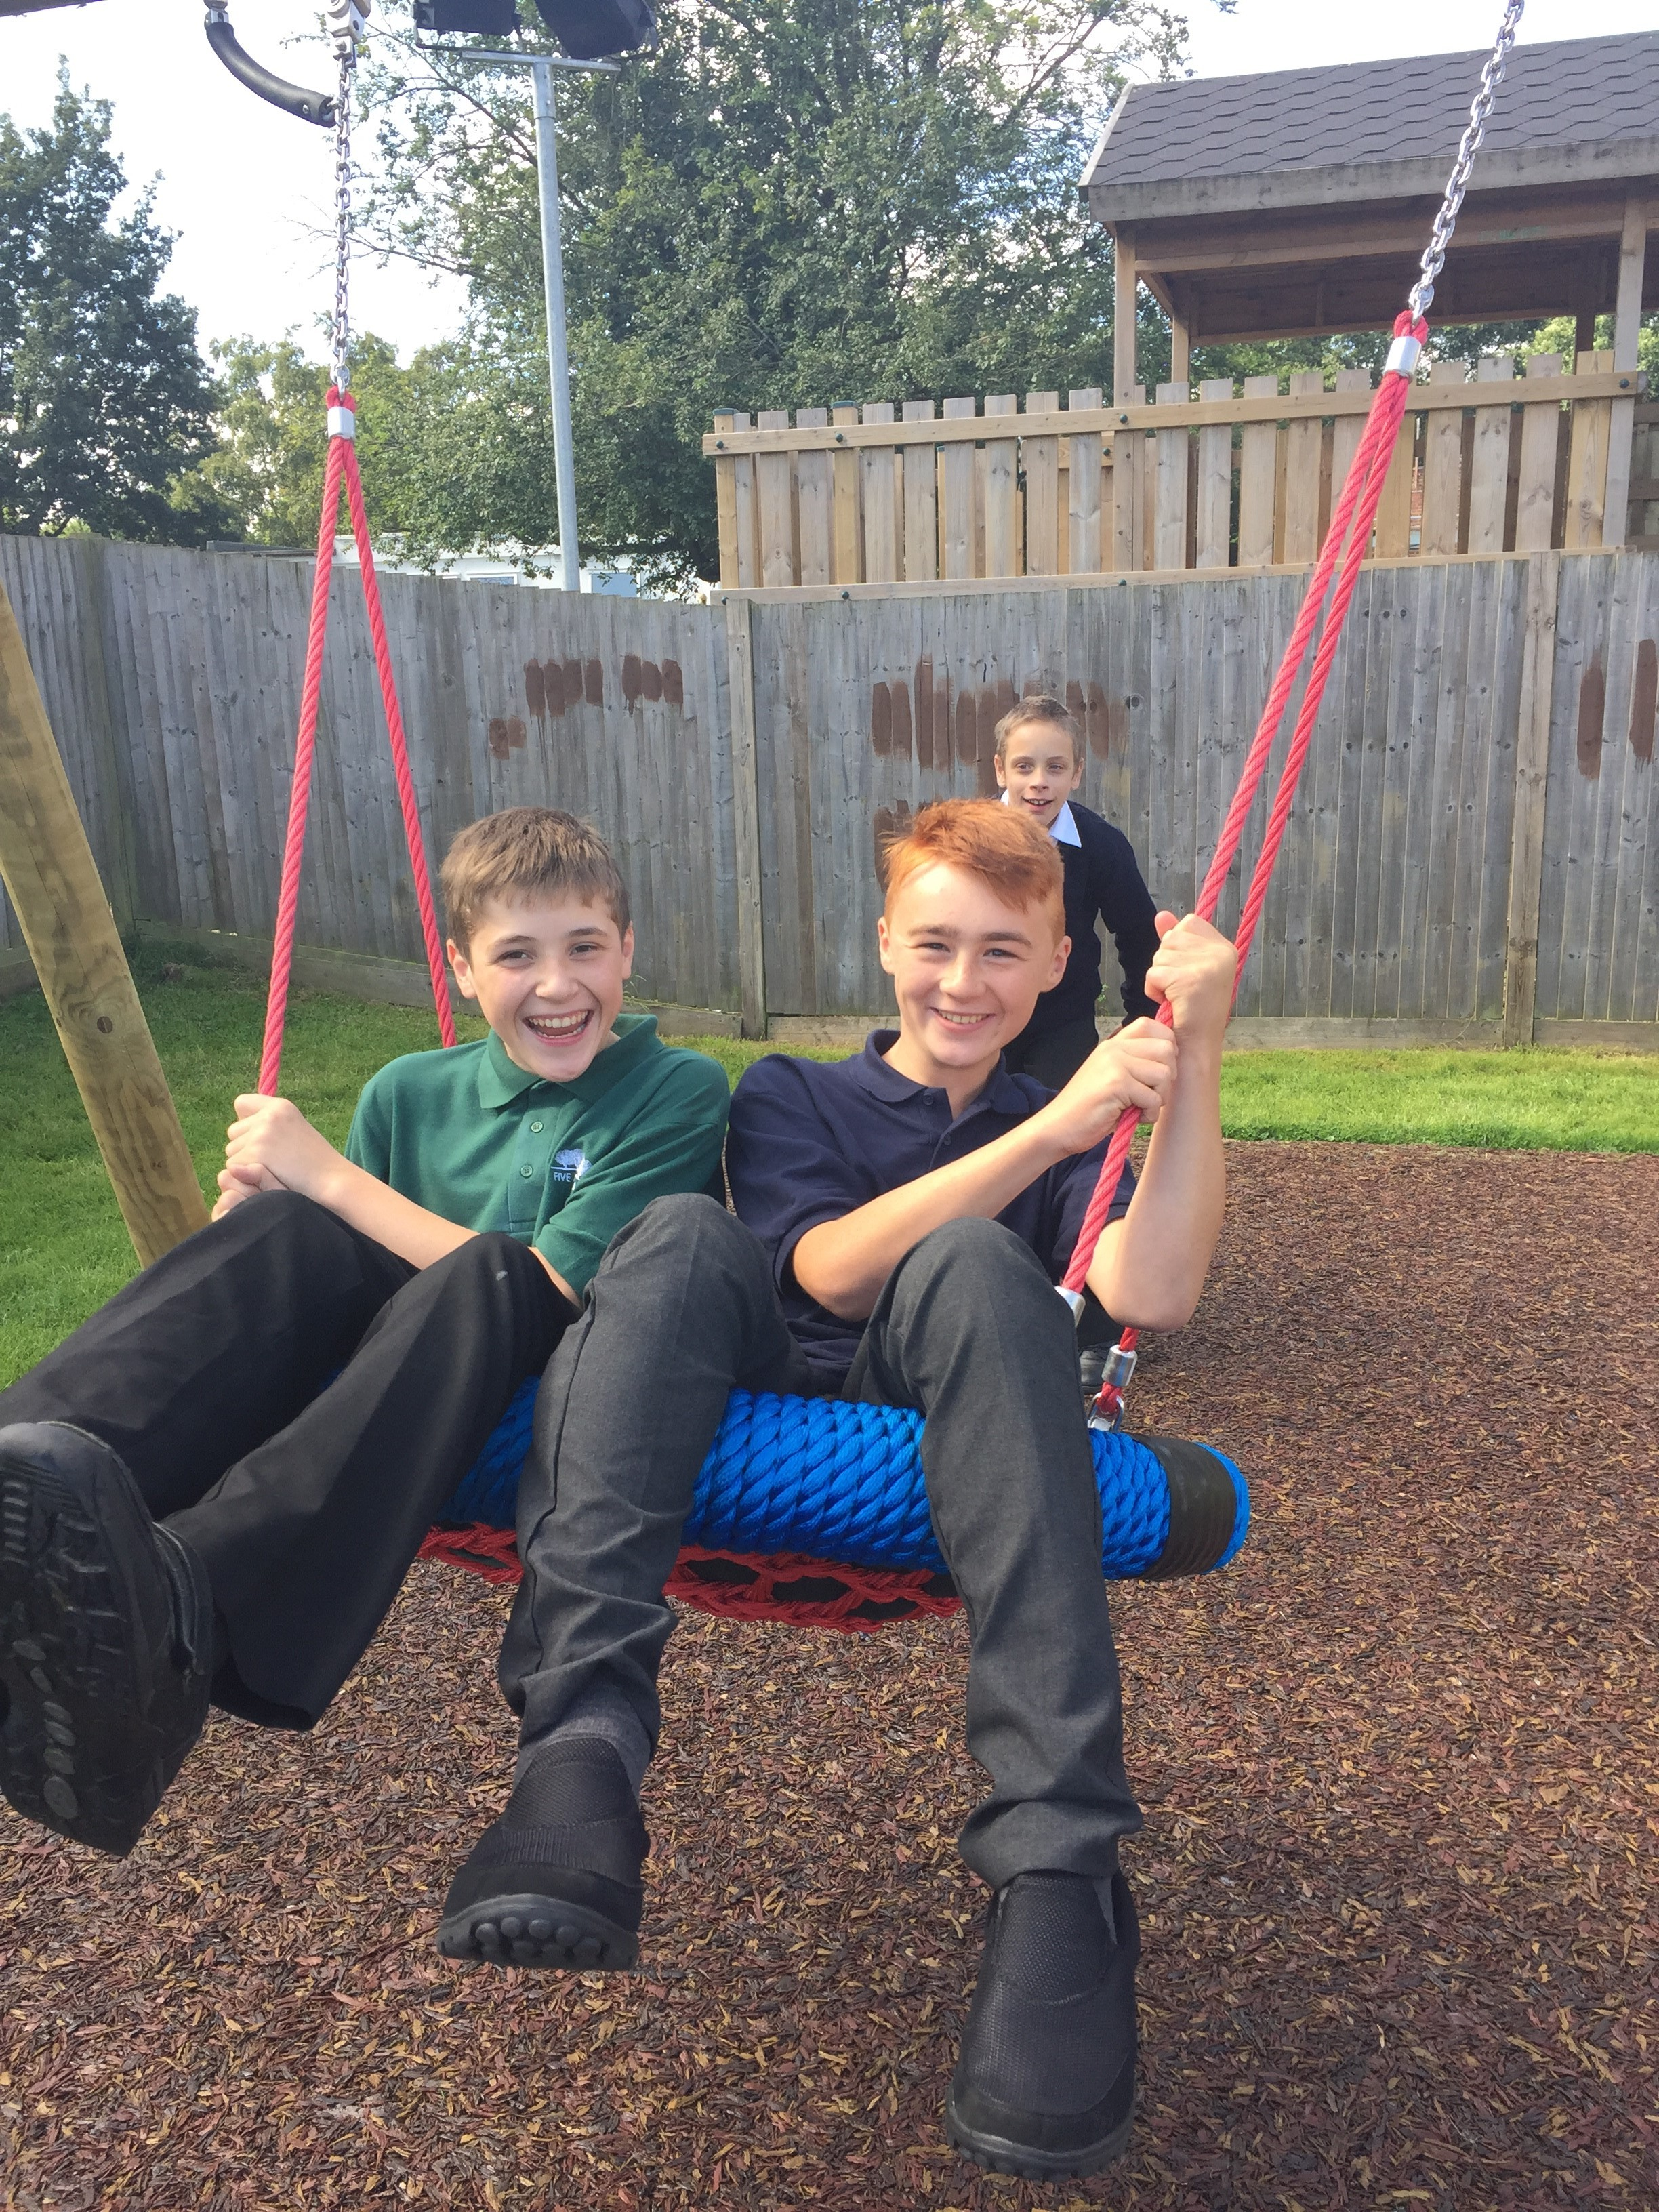 Five Acre Wood School: New Play Equipment For Students